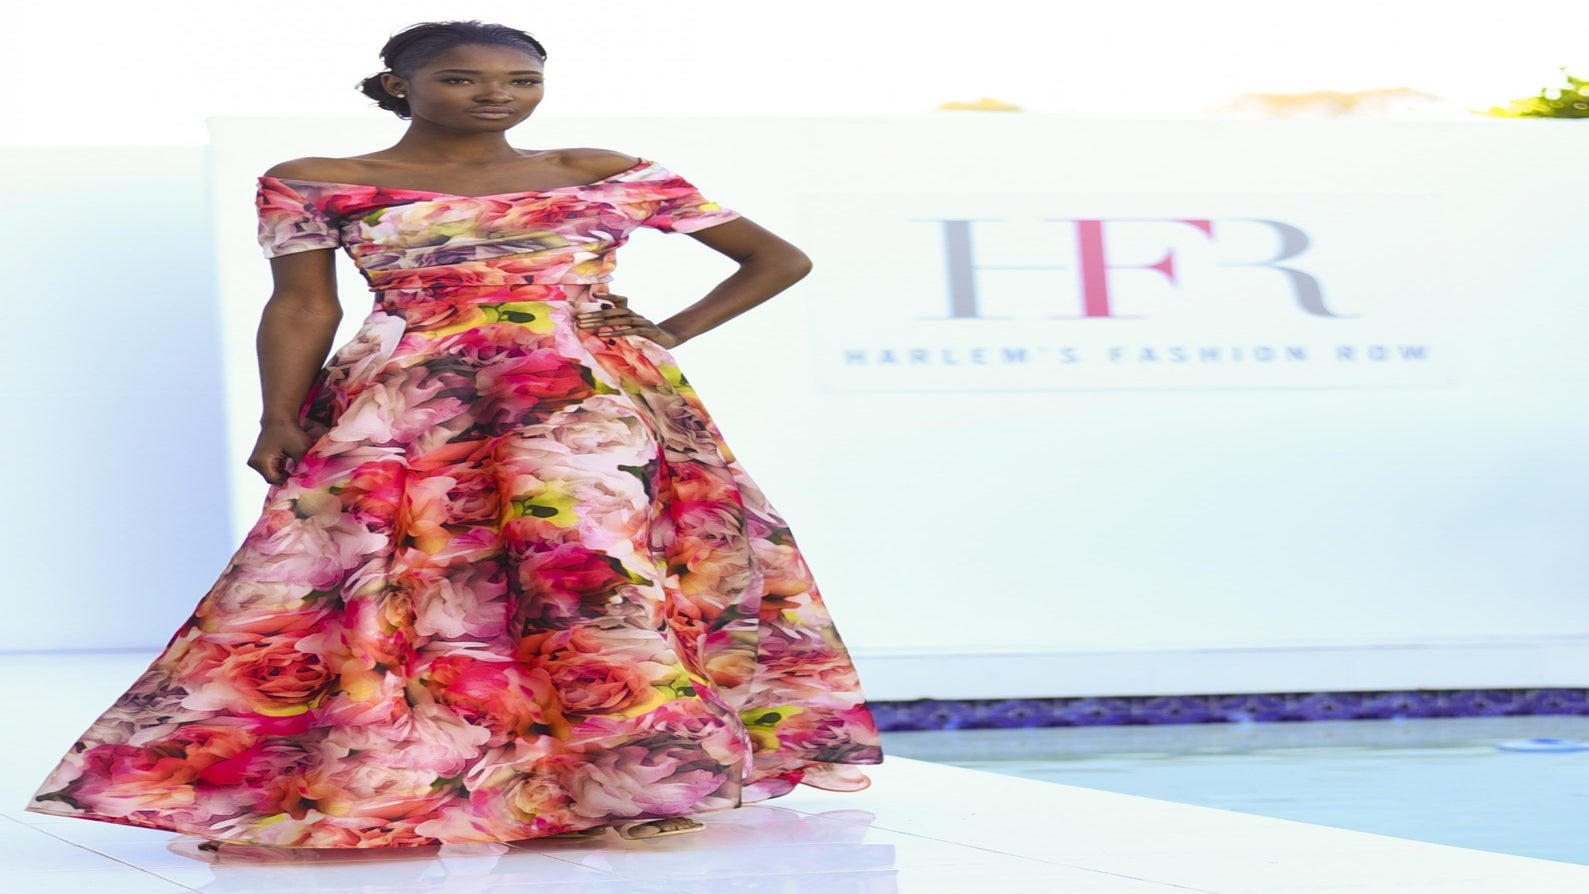 Harlem's Fashion Row Holds Open Call for Designers